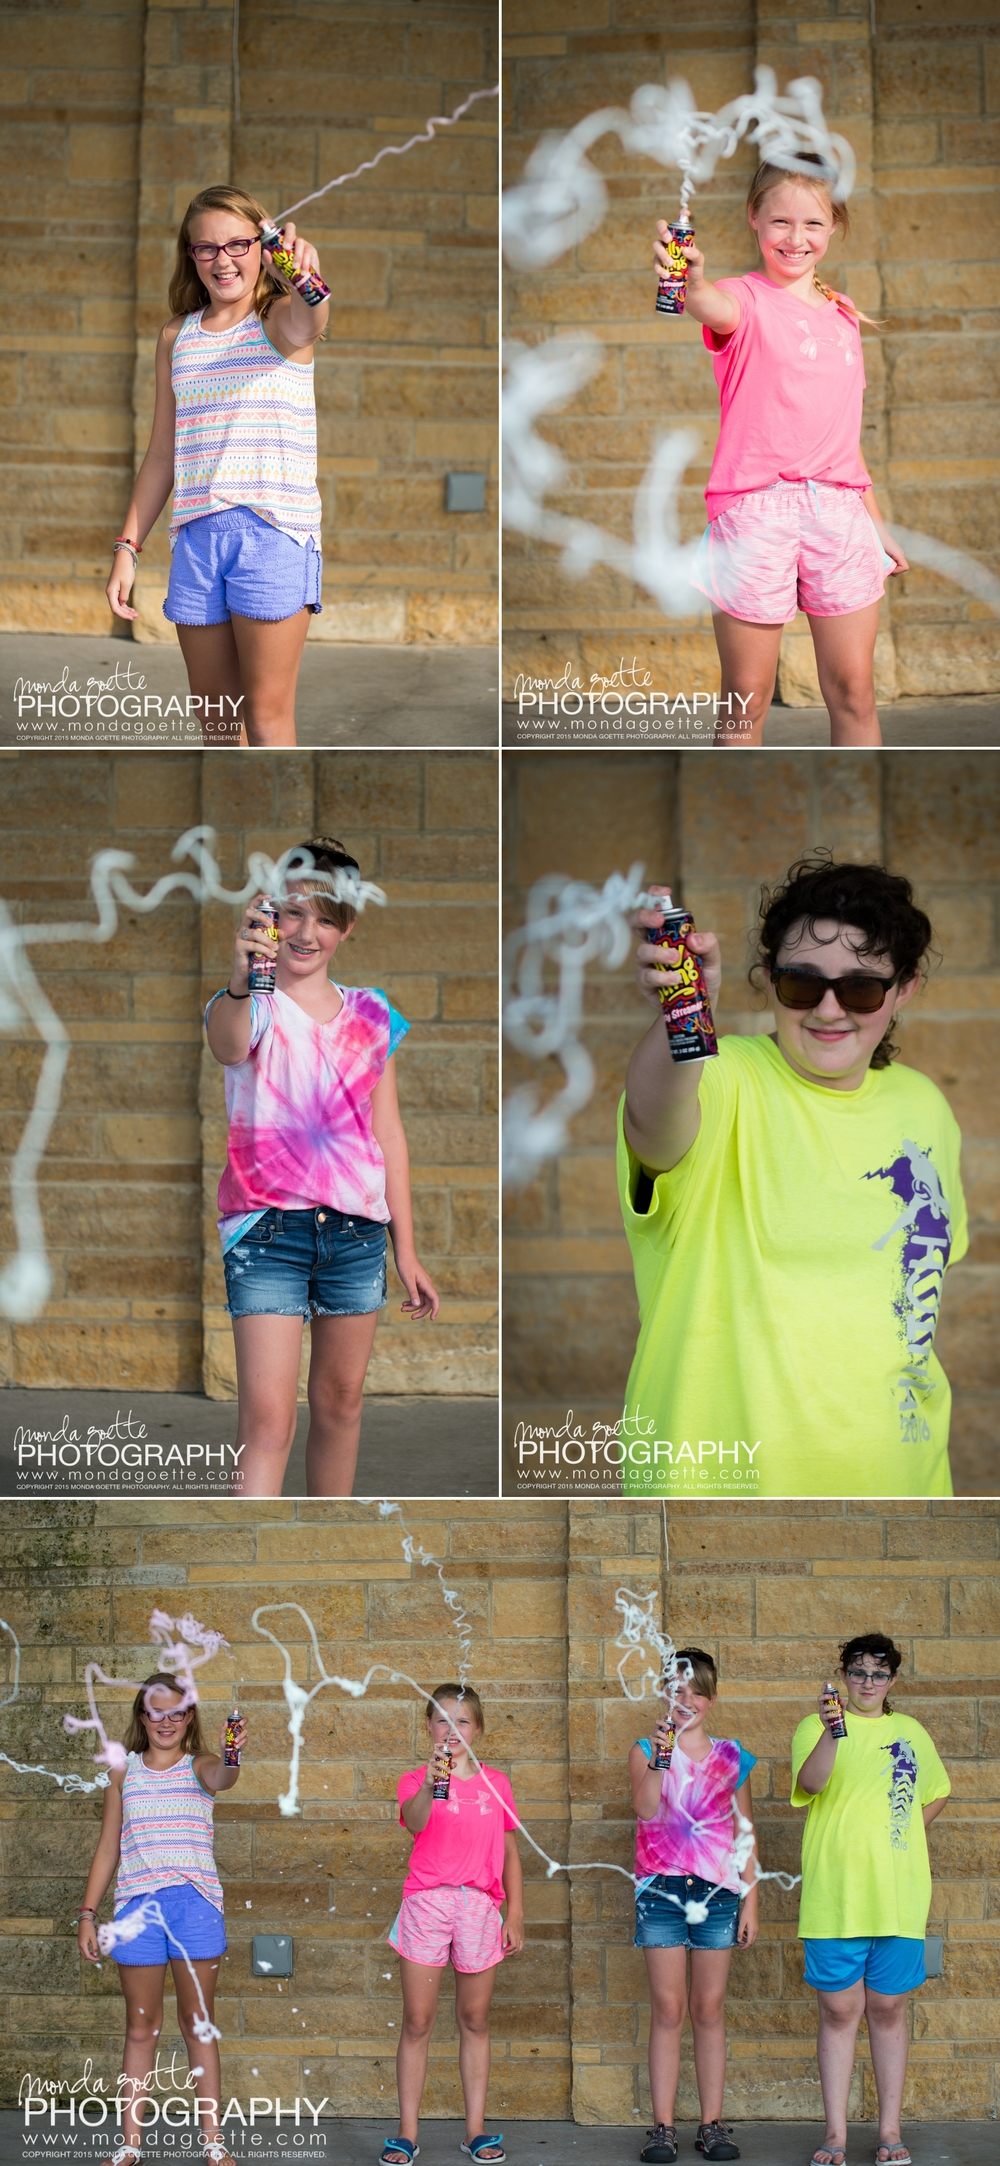 teen-photographer-in-Minnesota-Monda-Goette-Photography